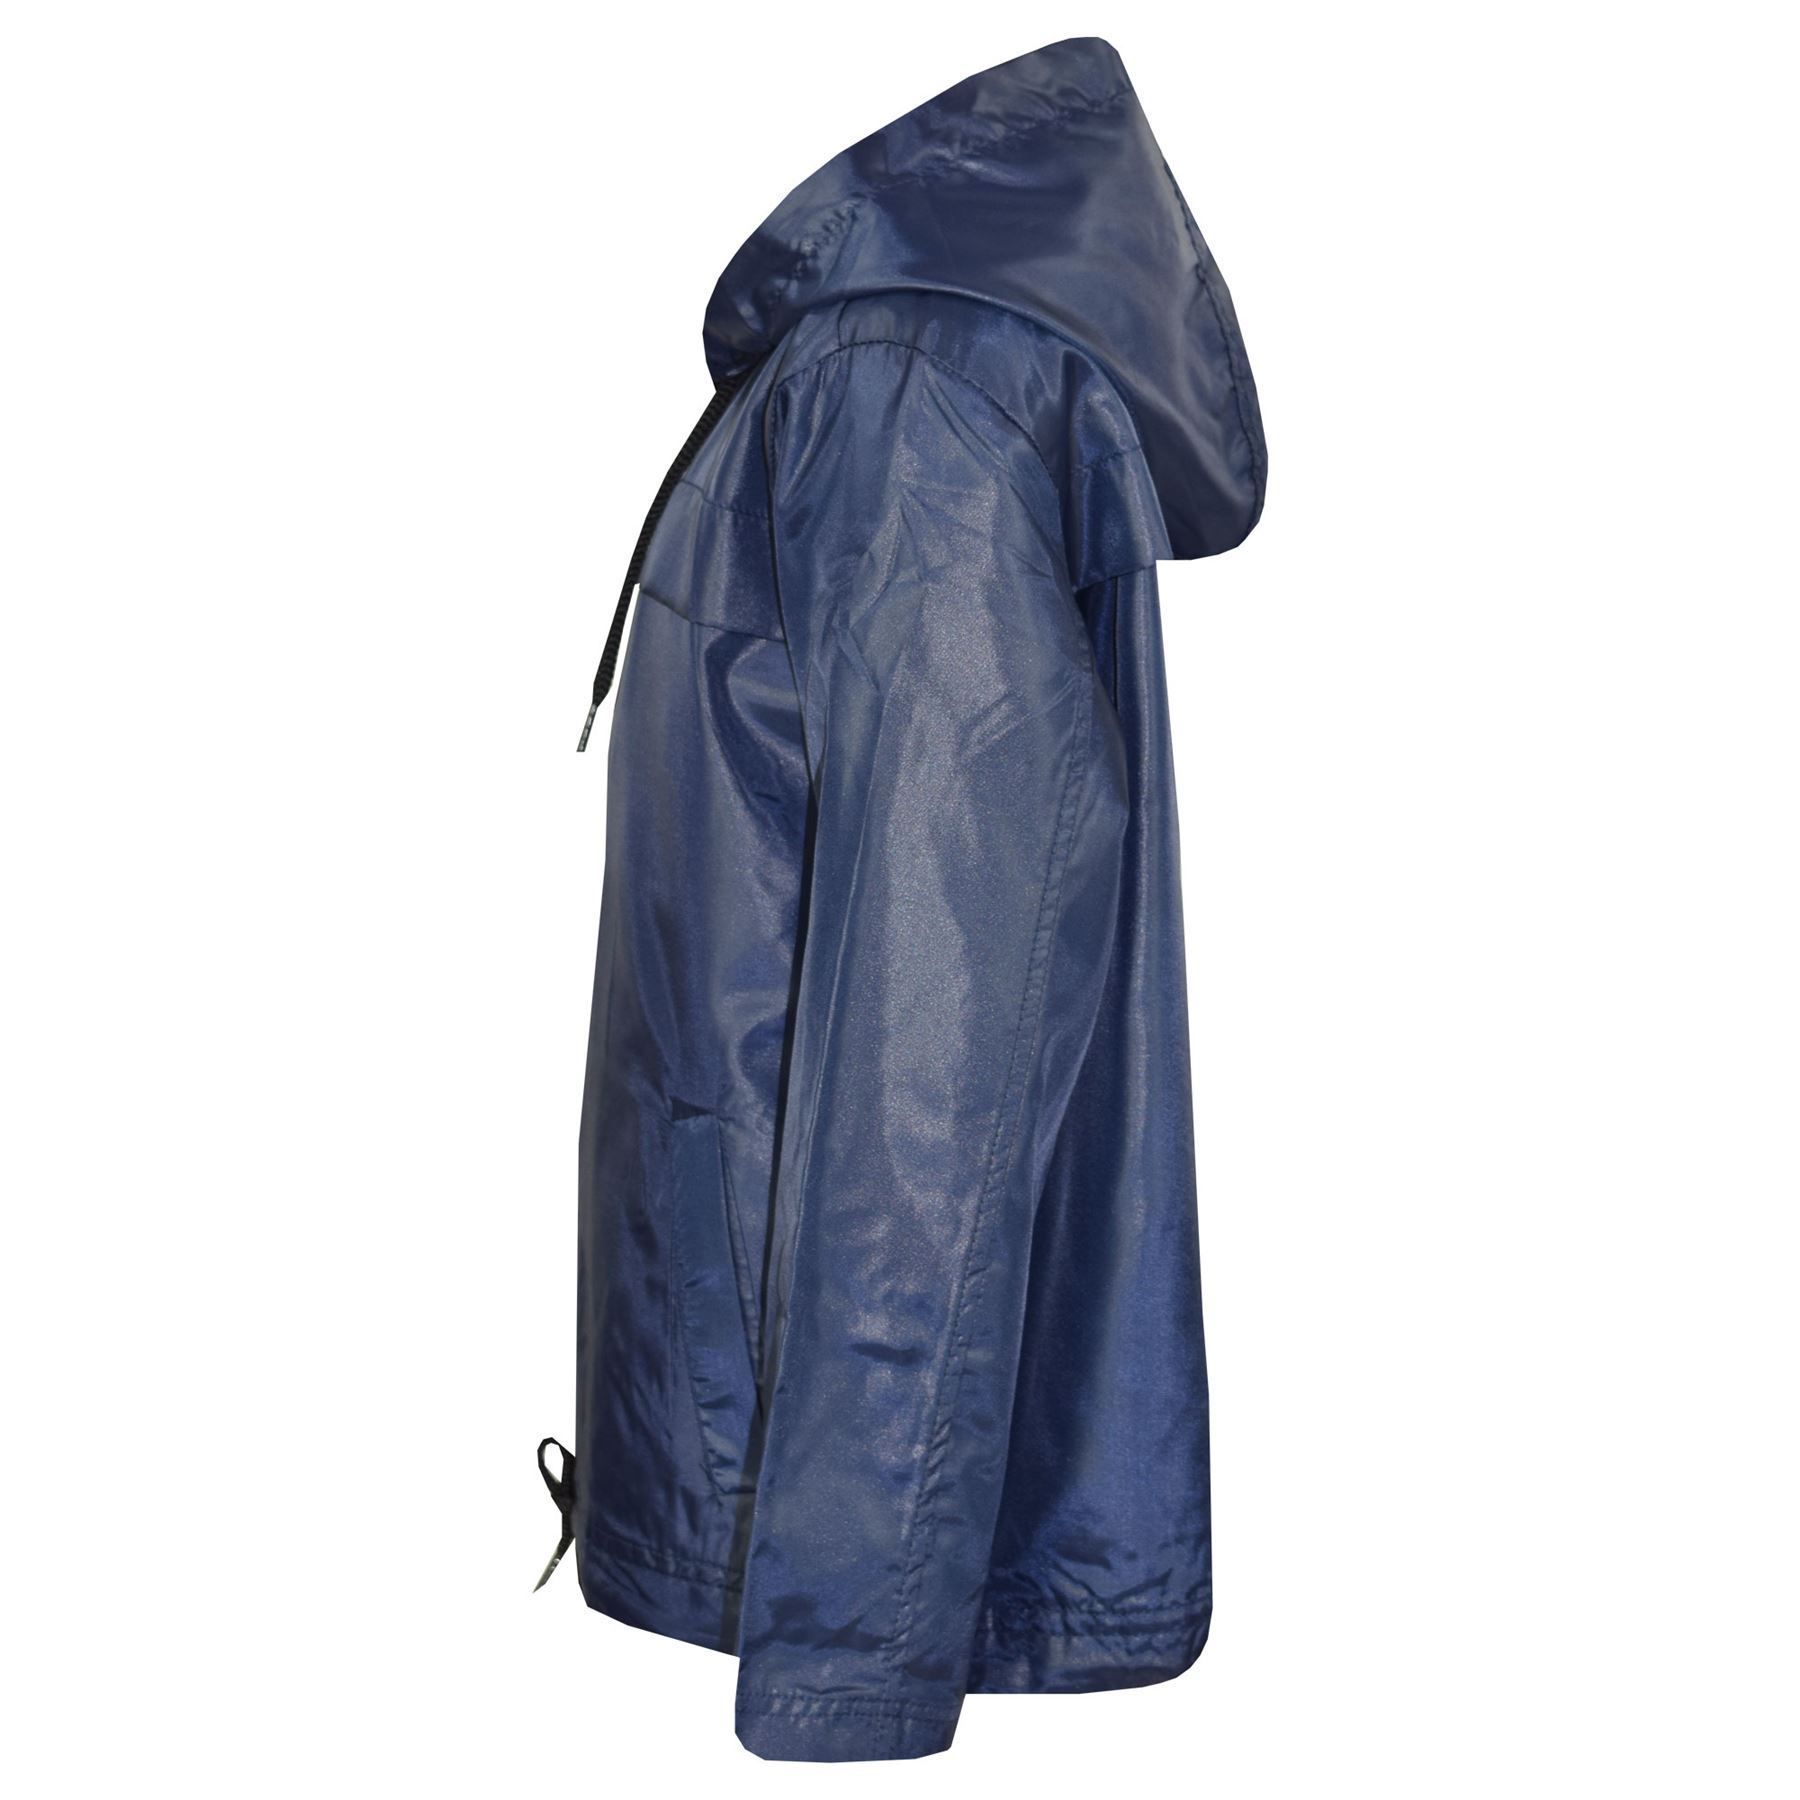 Kids Girls Boys Navy Hooded Raincoats Cagoule Lightweight Jacket Rain Mac 5-13 Y